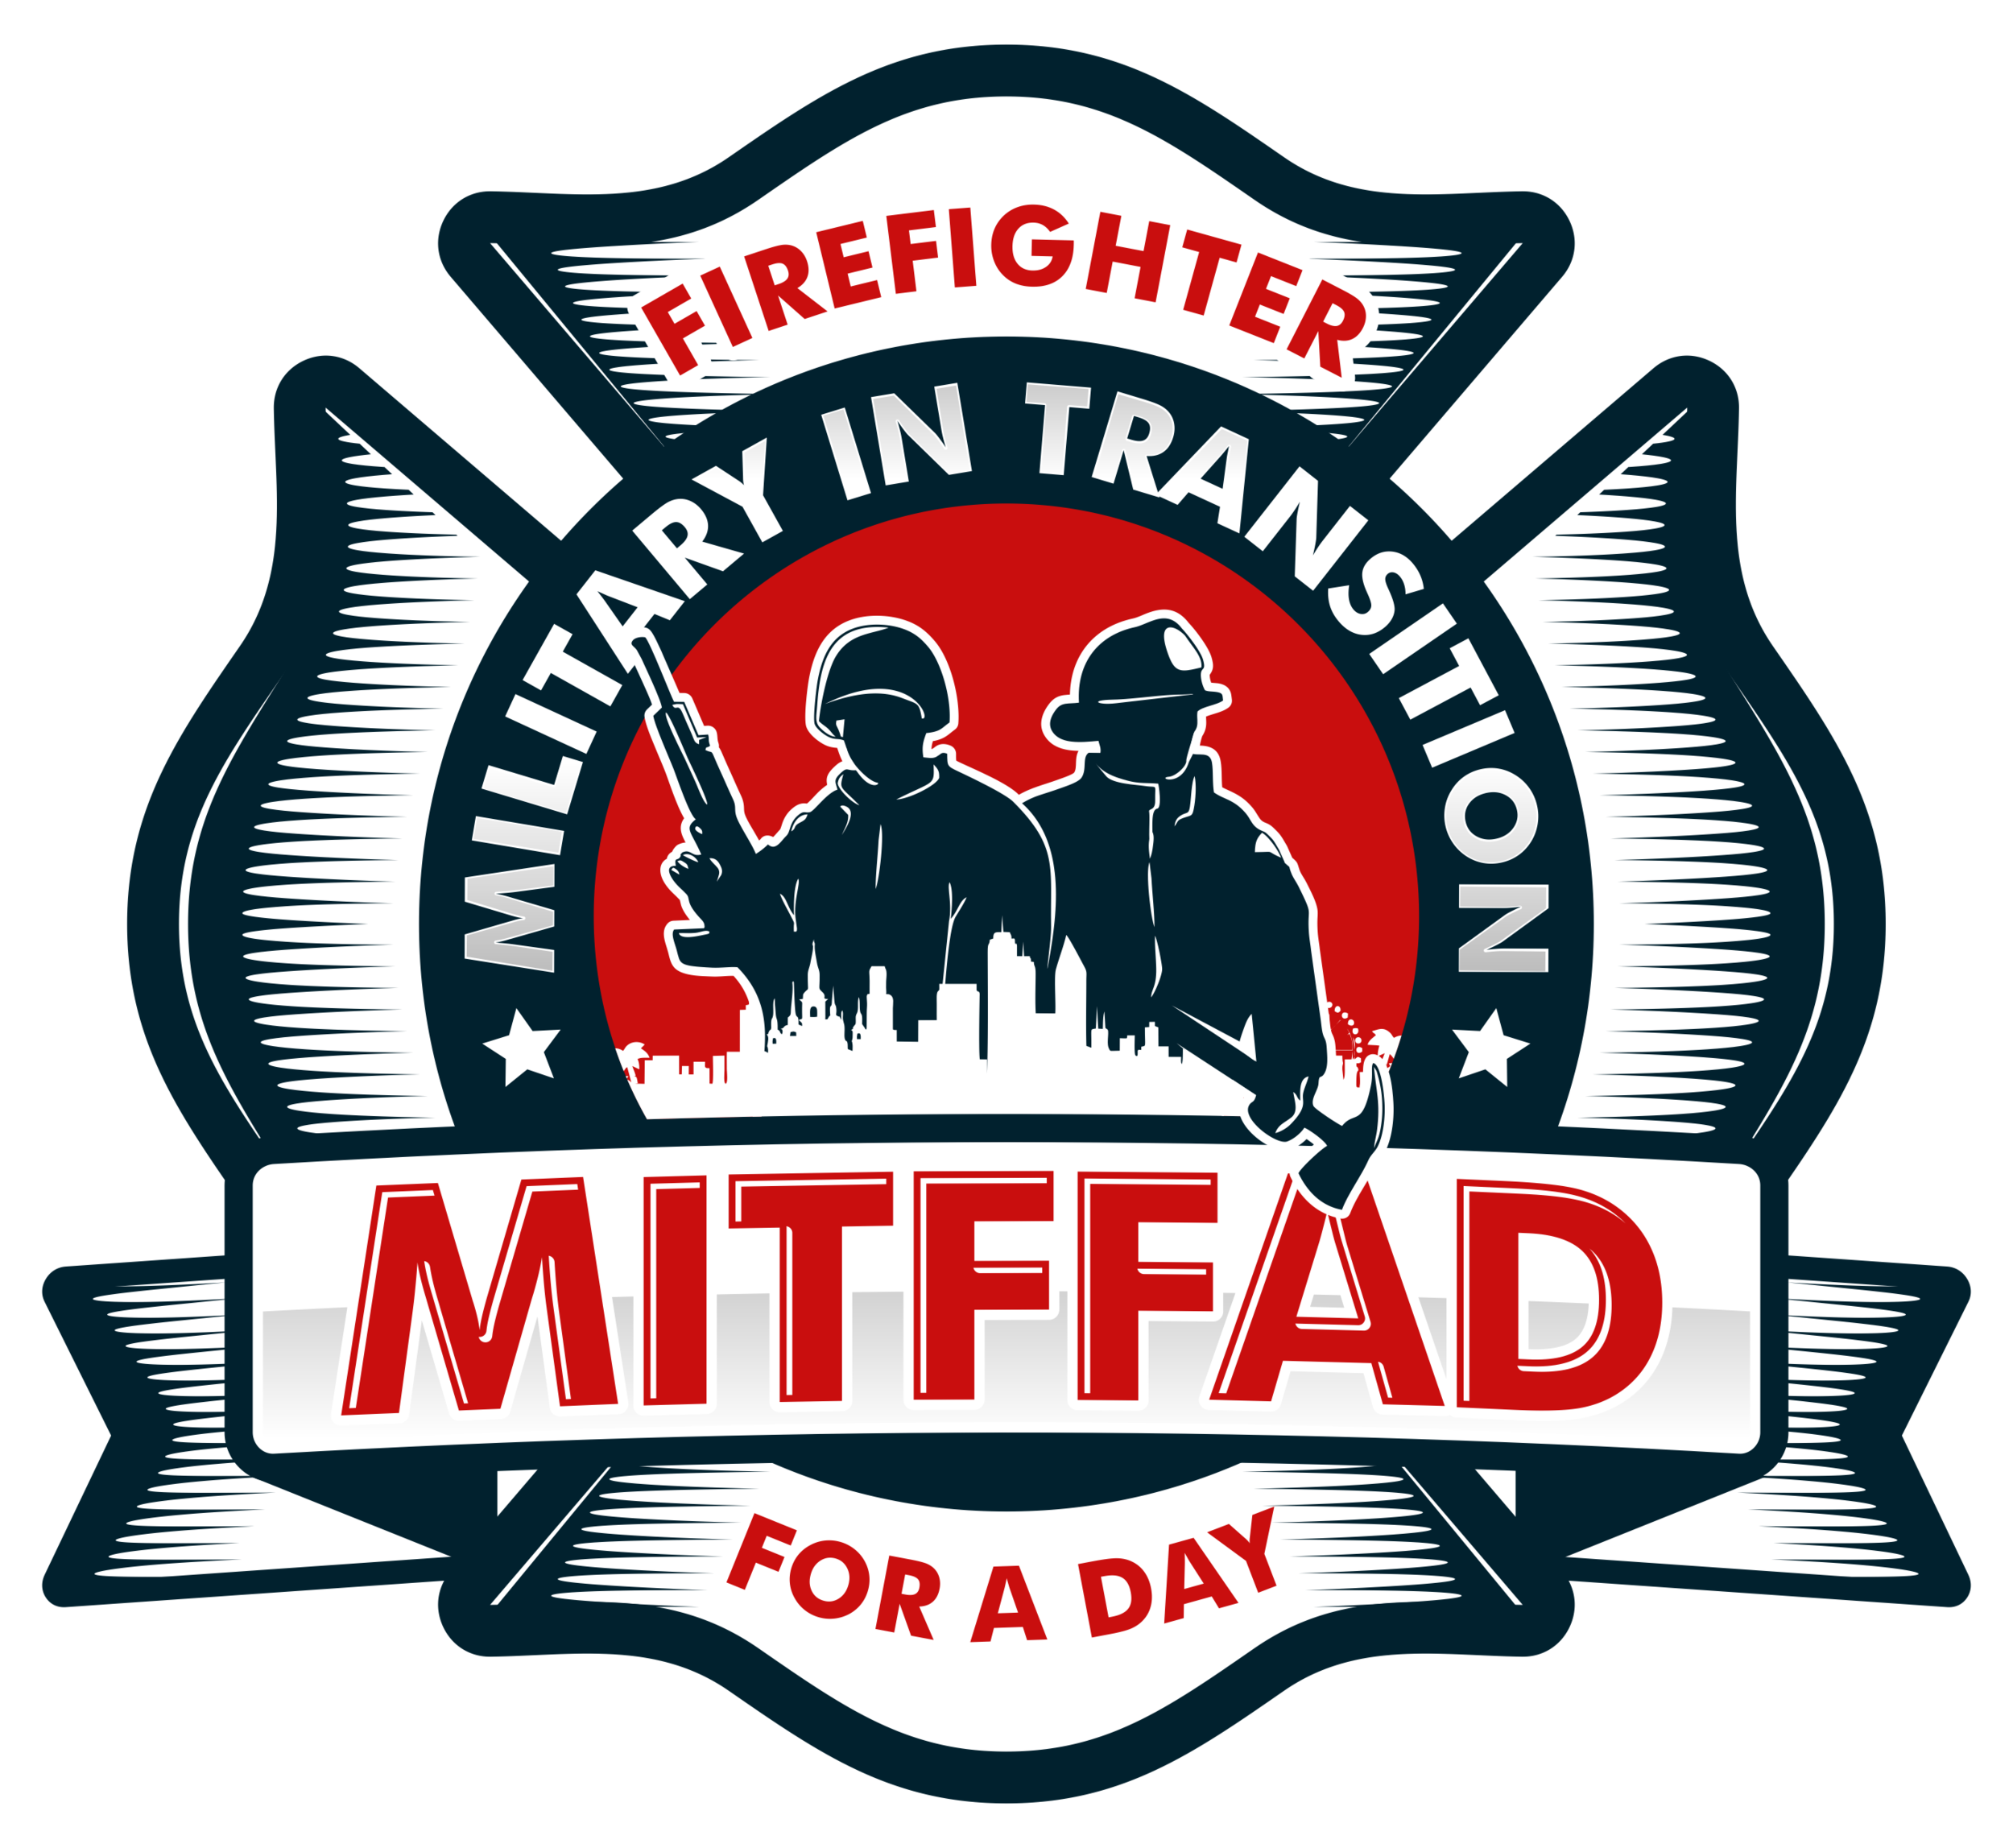 Military In Transition Firefighter For A Day